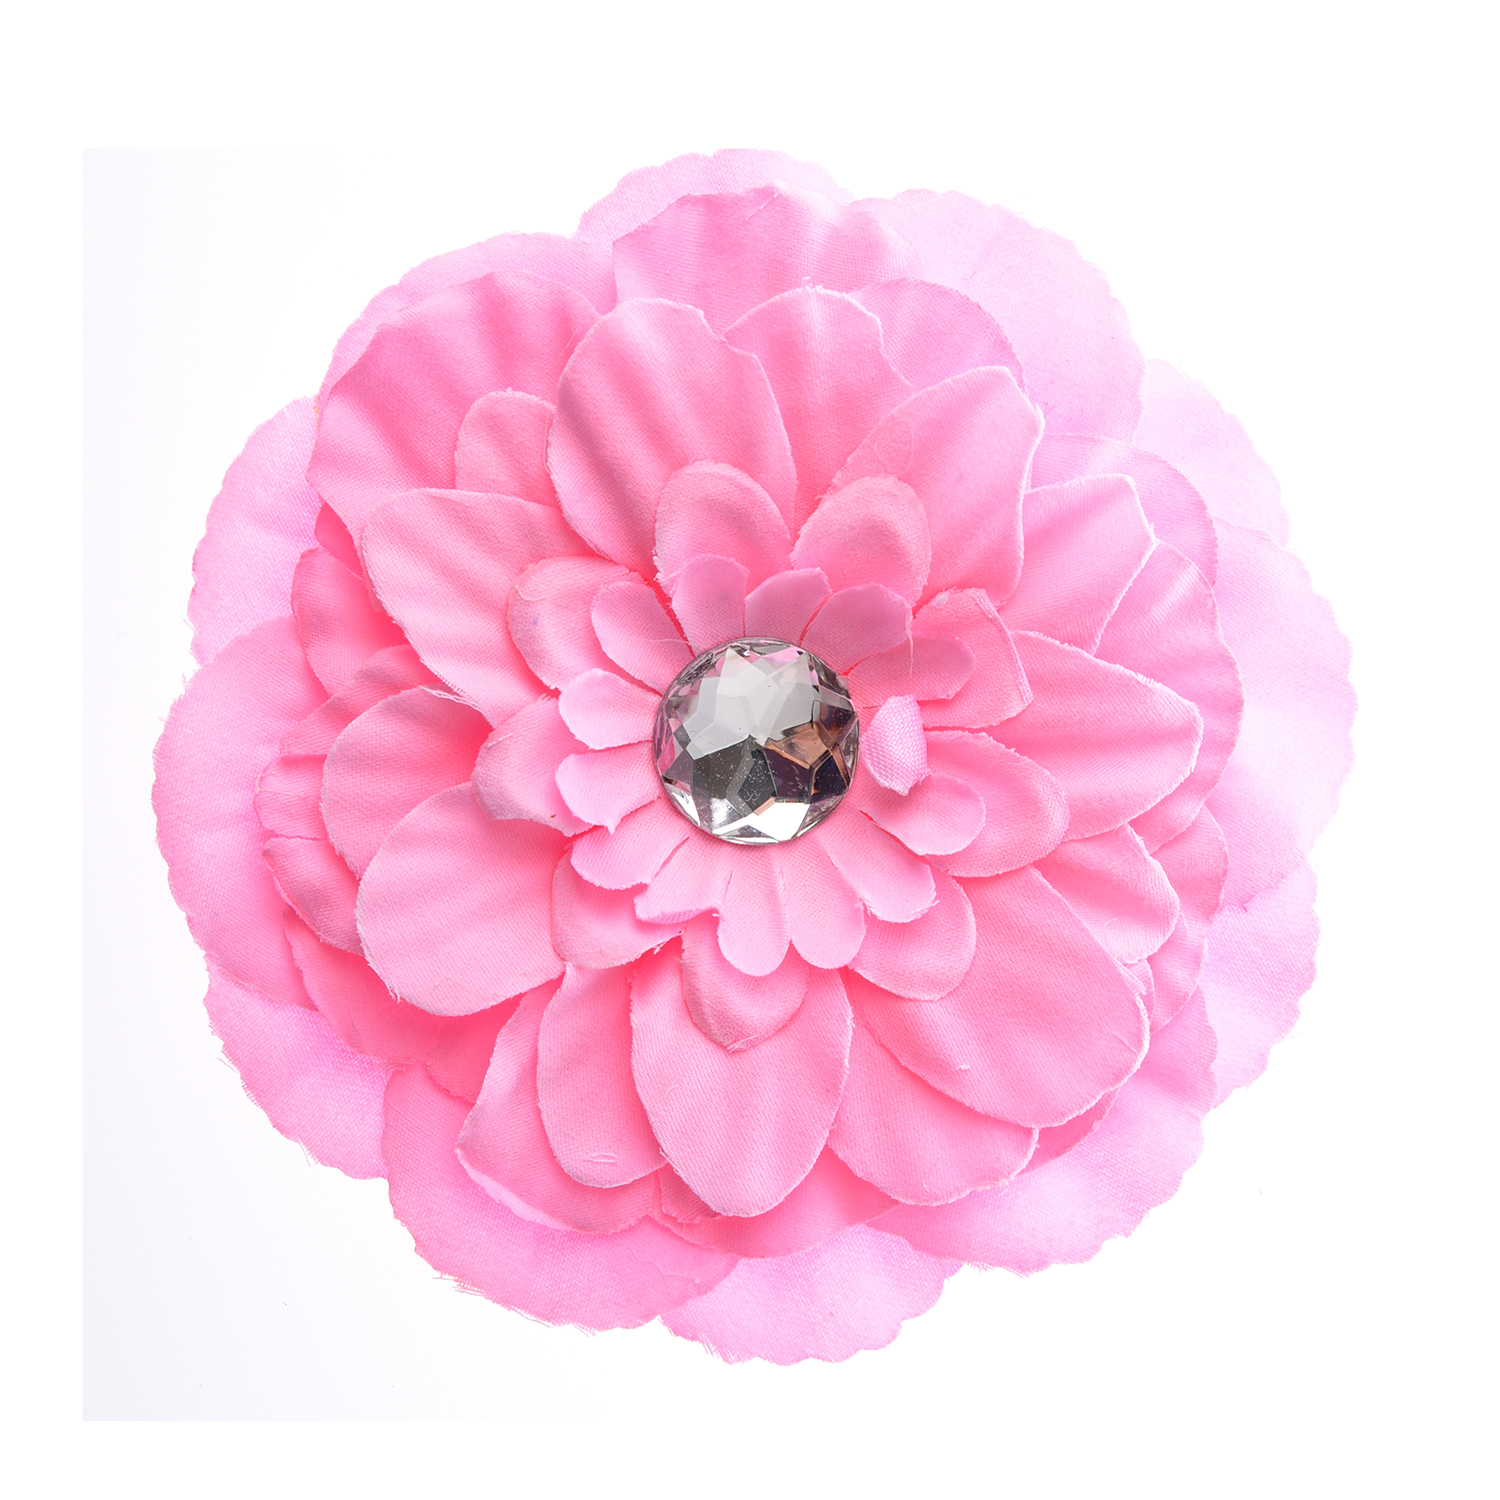 5X Rhinestone Peony Flower Hair Clip for Baby Toddler Lady - Pink W2N9